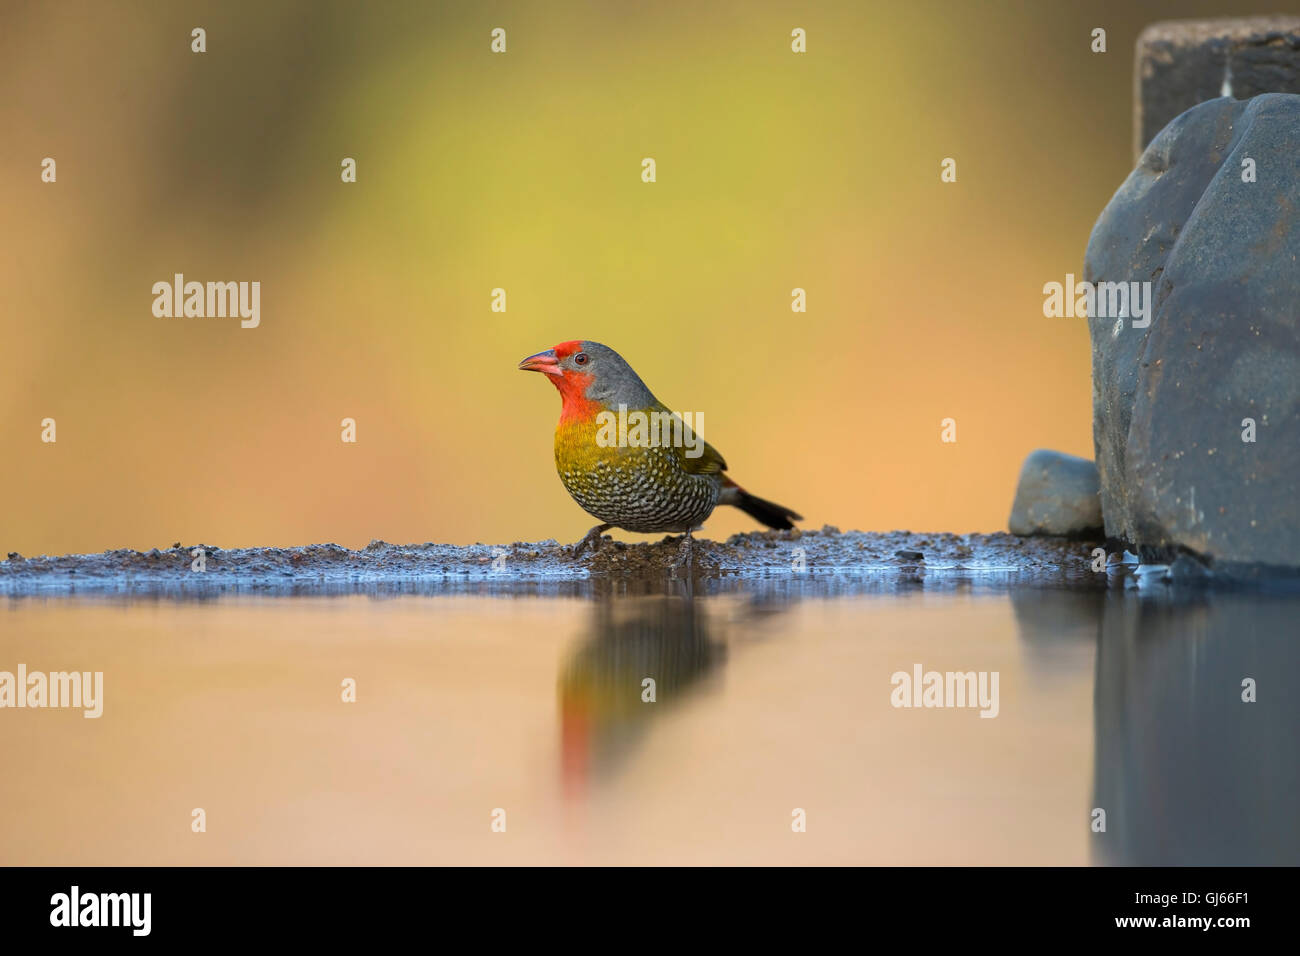 Green-winged Pytilia Pytilia melba male perched on the edge of a pond and reflected in the still water Stock Photo